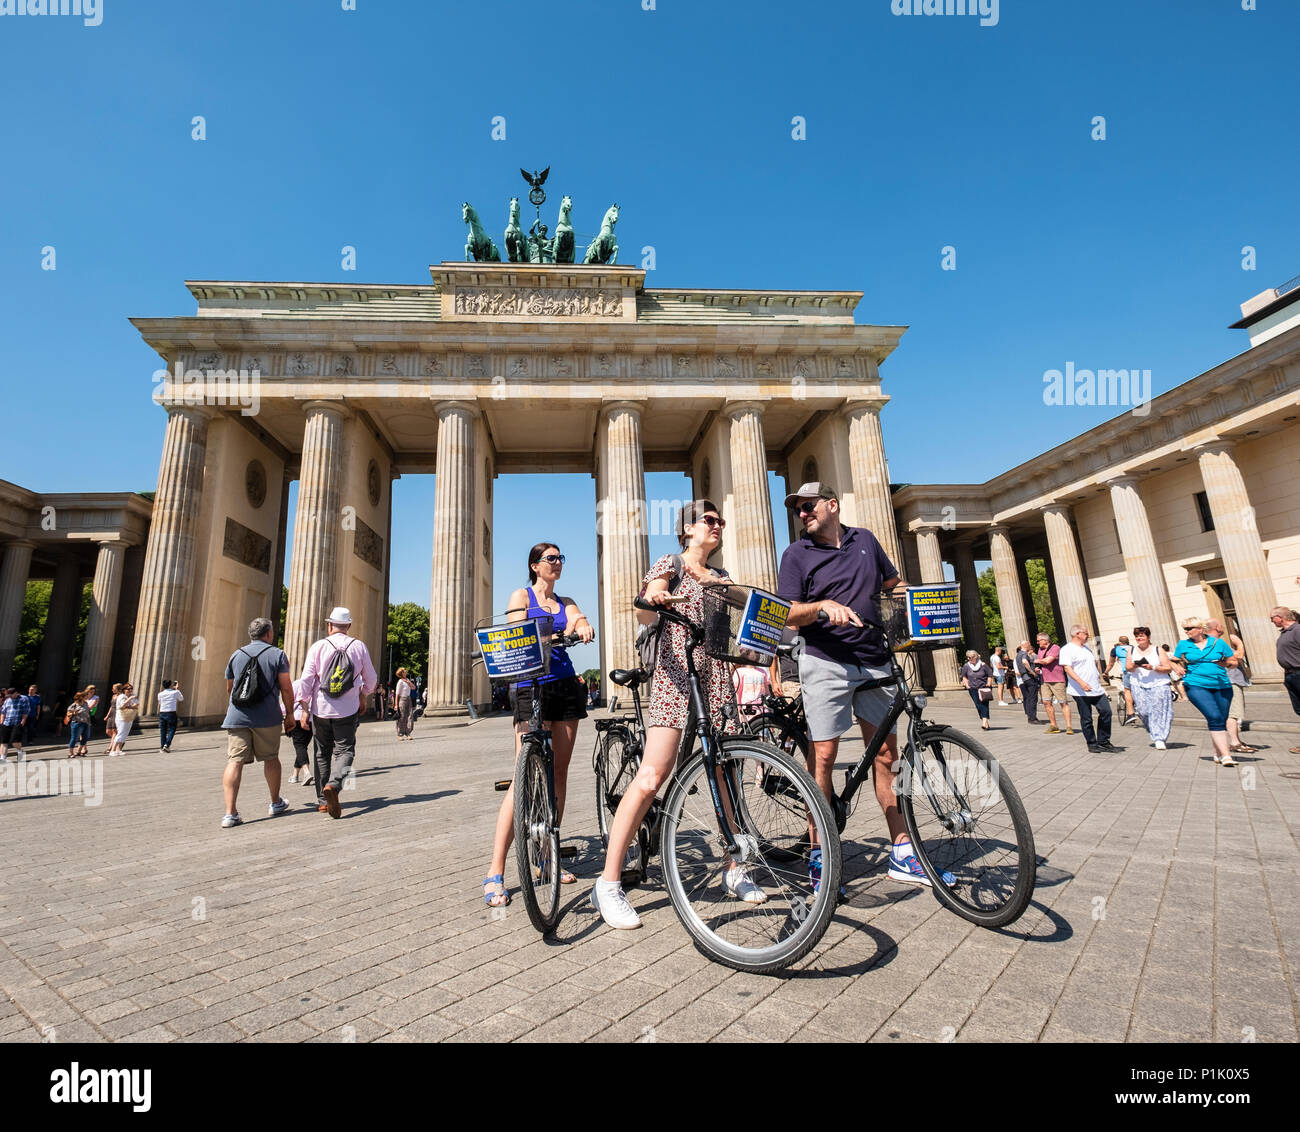 Tourists on bicycles in front of Brandenburg Gate in Berlin, Germany - Stock Image